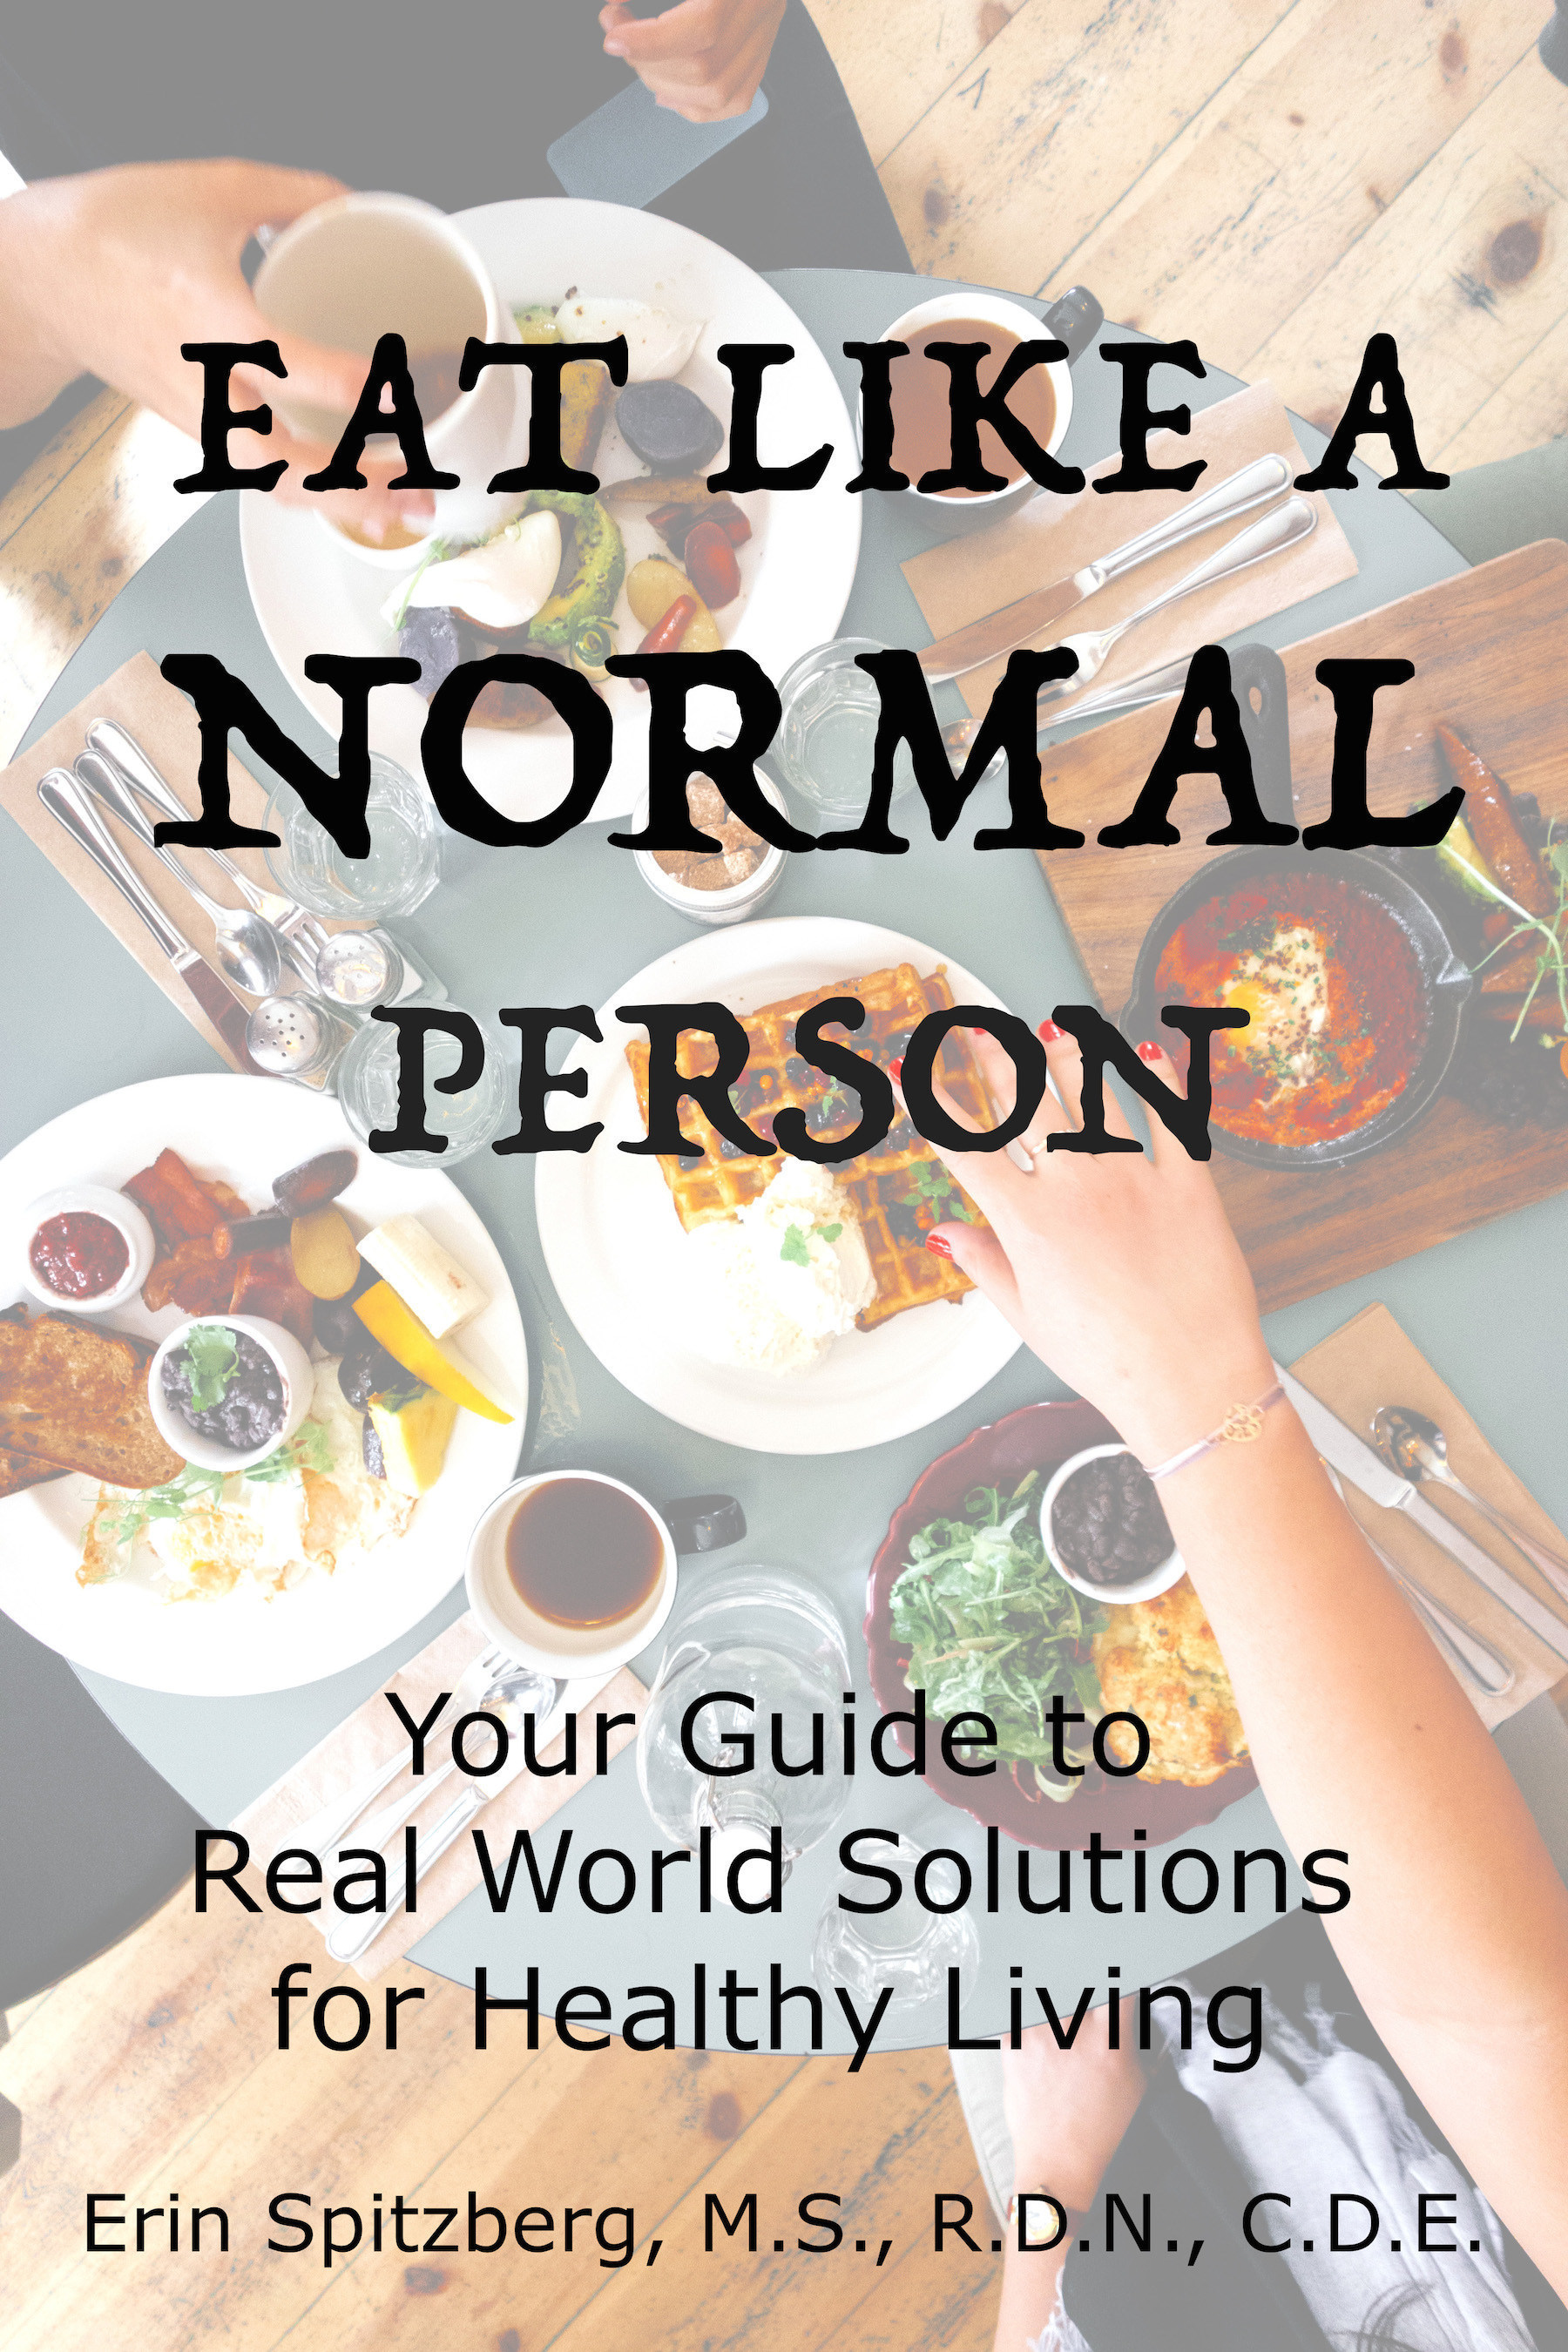 Have You Ever Wished You Could Just Eat Like a Normal Person?